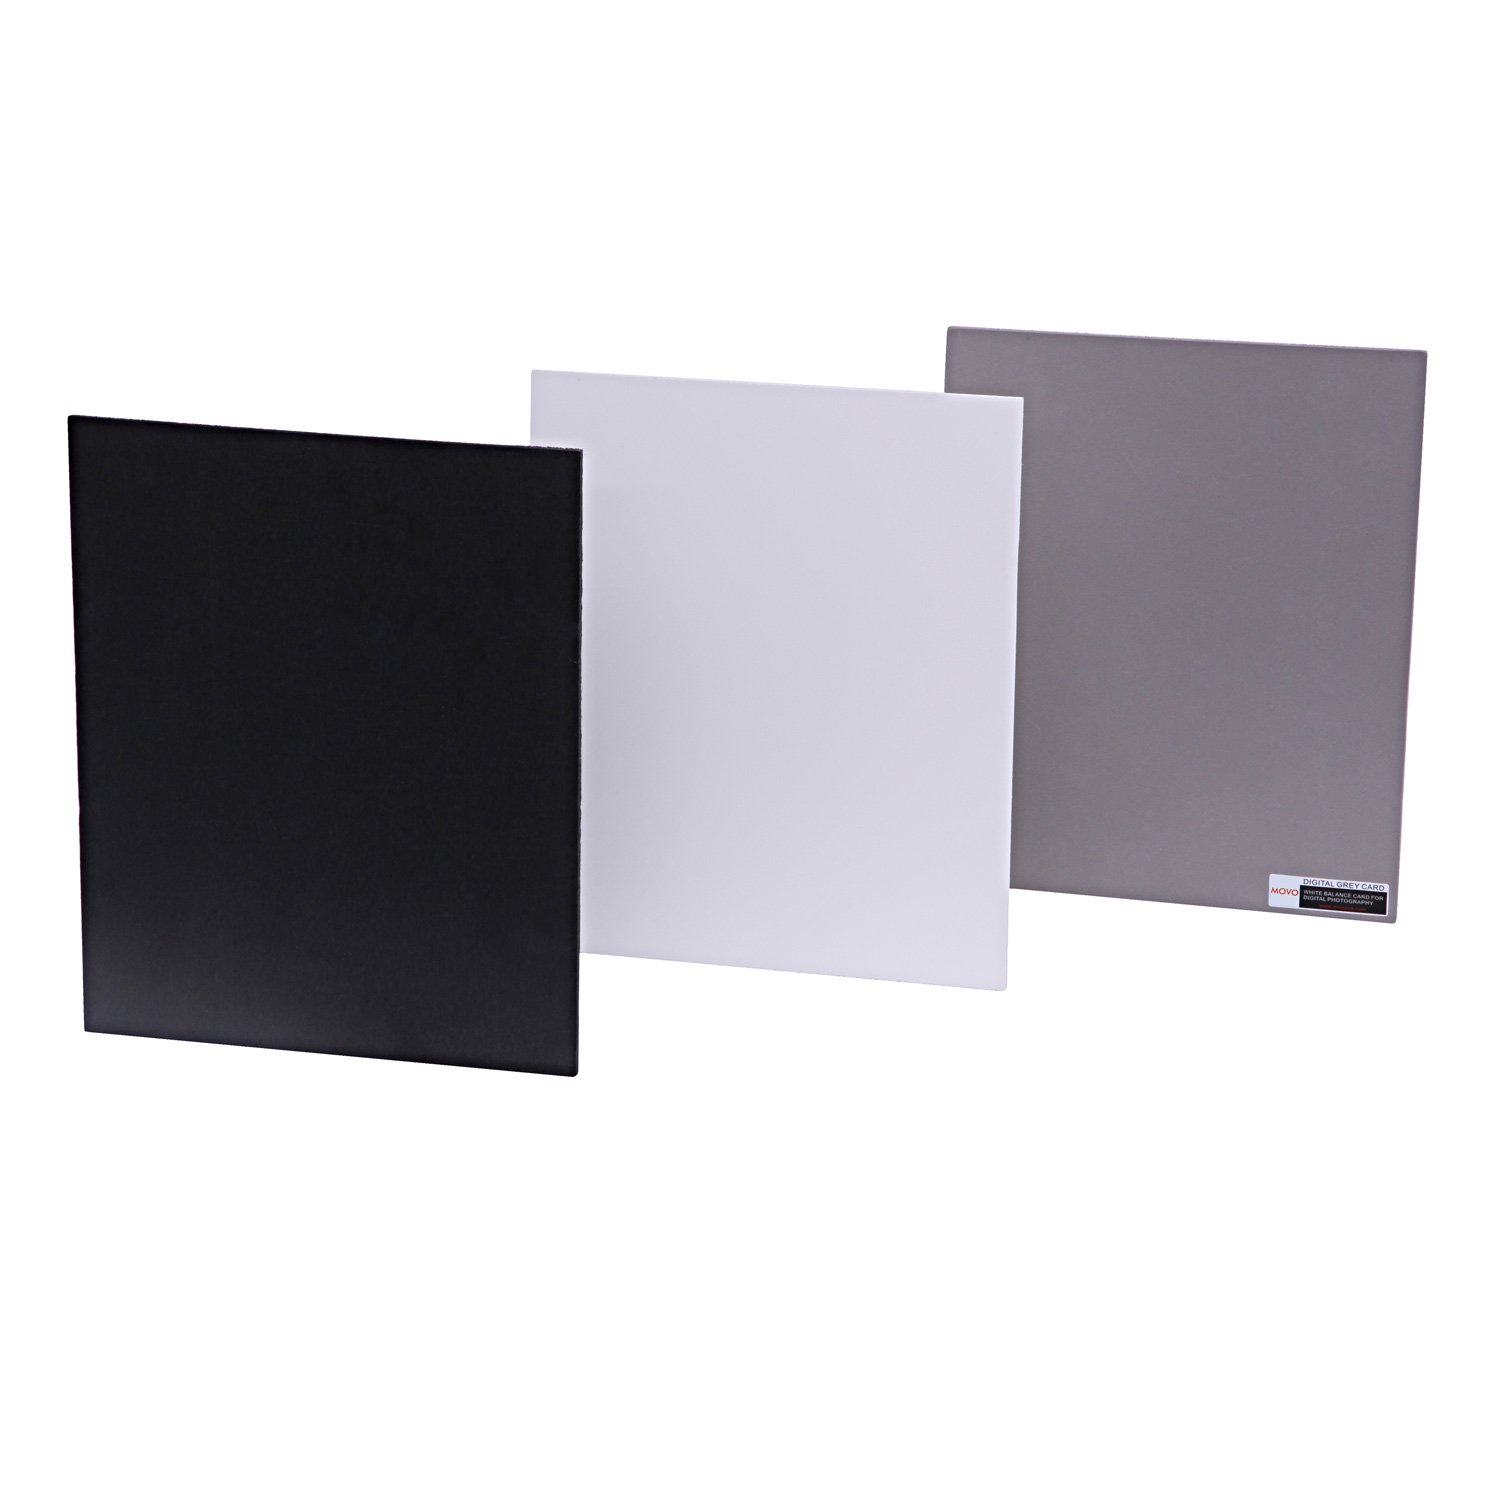 Movo Photo Color/White Balance Card Set for Digital Photography (Full-sized, 8 X 10) by Movo